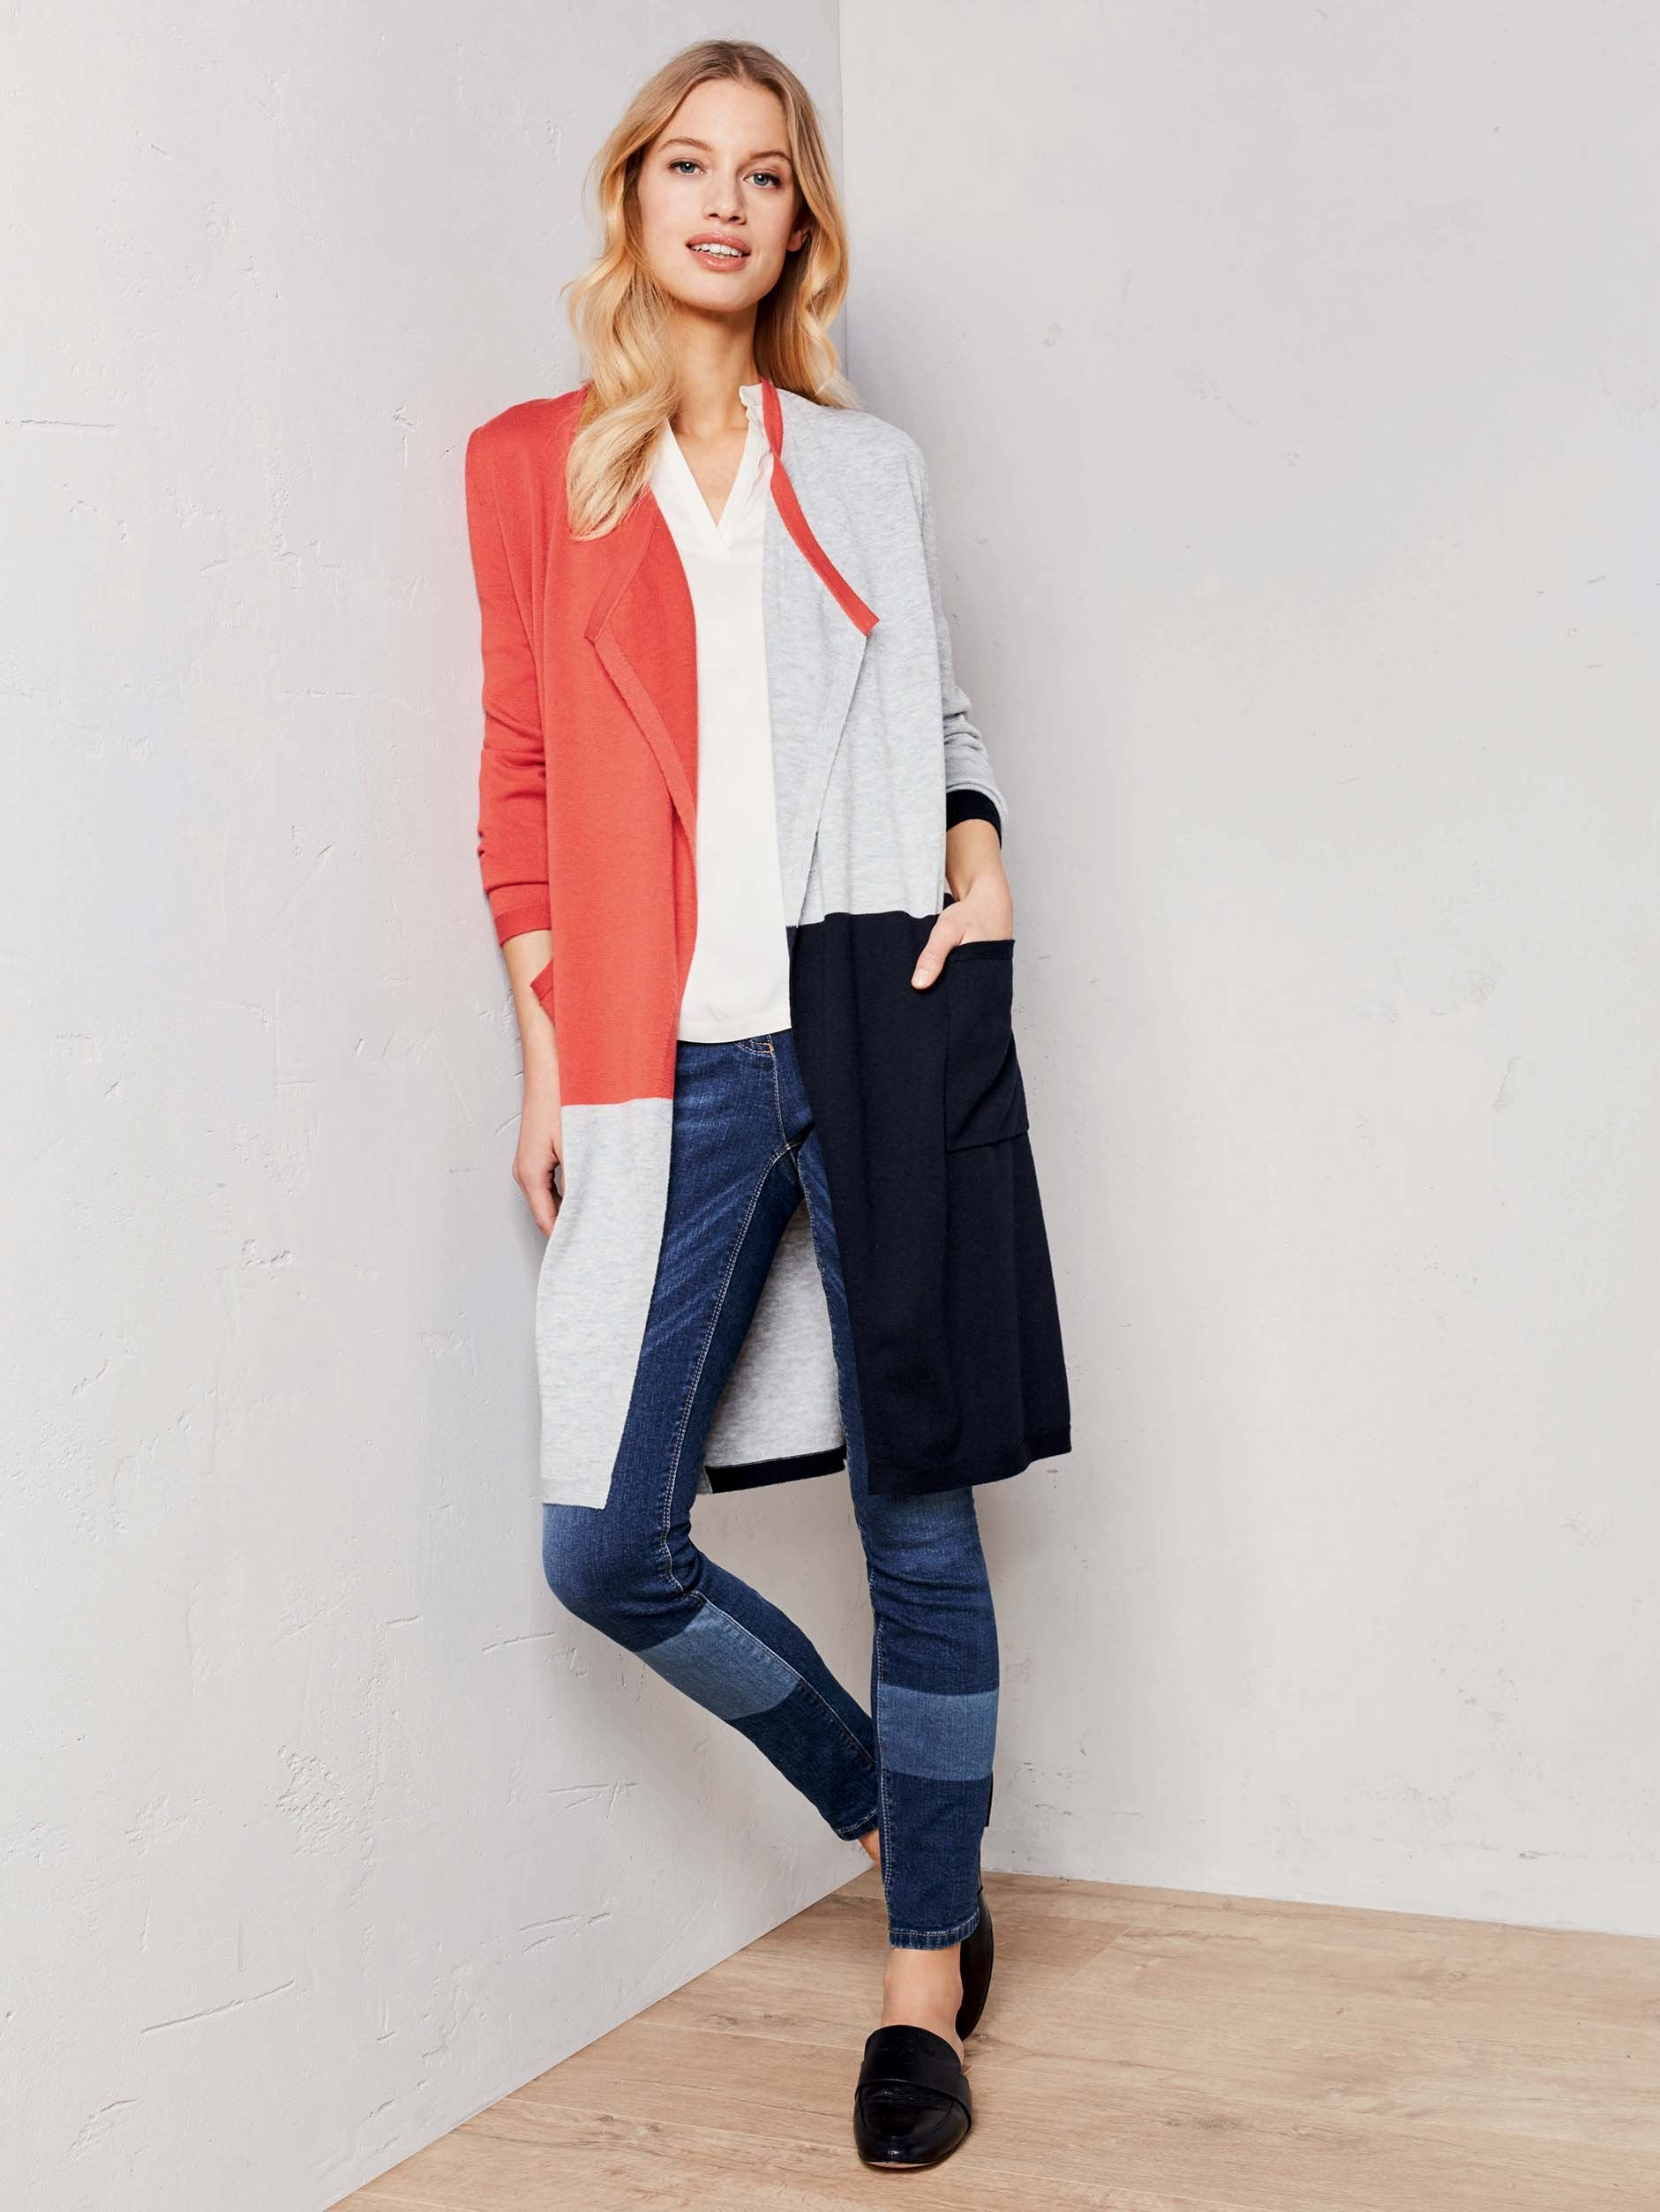 Gerry Weber Colour Block Cardigan